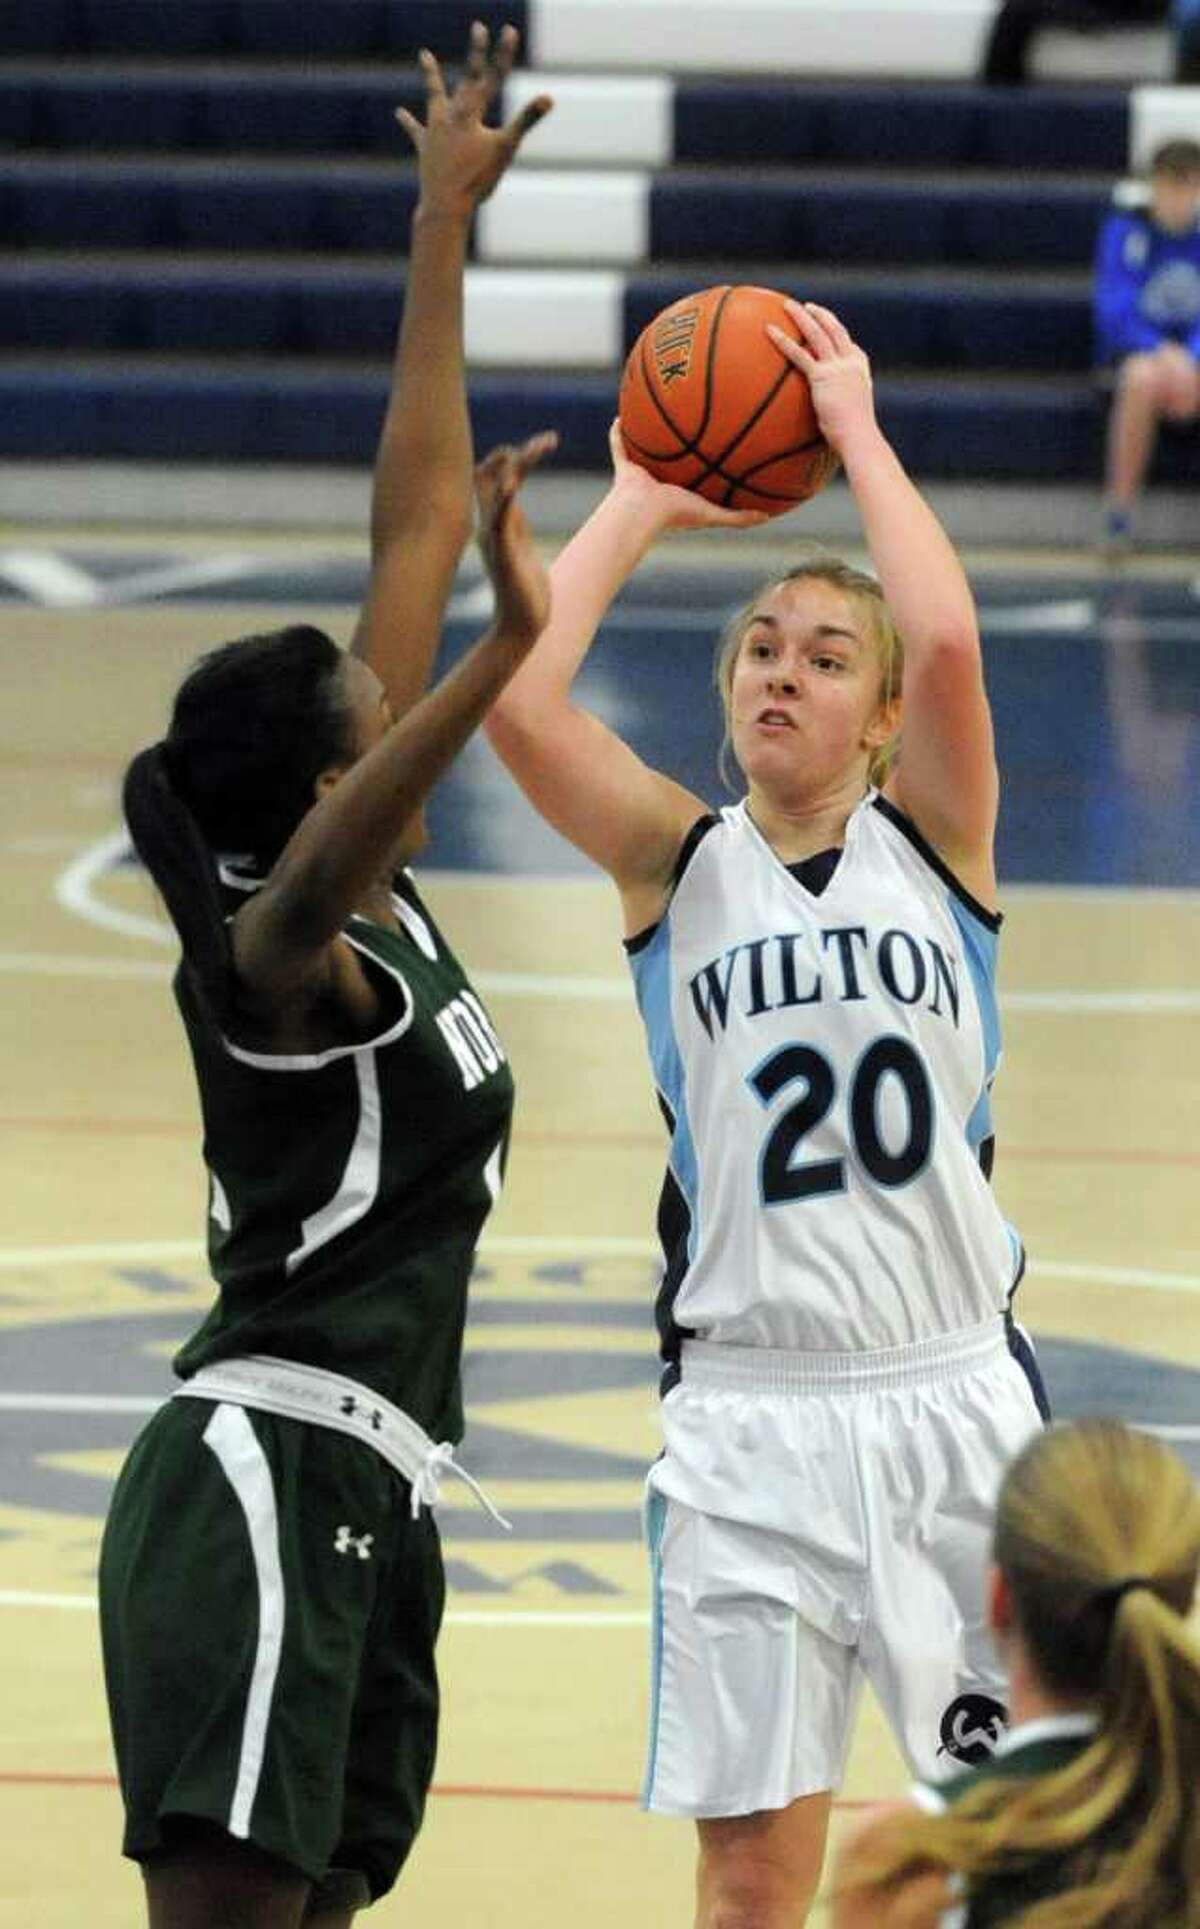 Wilton's Maddy Fulton takes a shot as she is defended by Norwalk's Emma Oyomba during Saturday's FCIAC Girls Basketball quarterfinal game at Wilton High School on February 18, 2012.